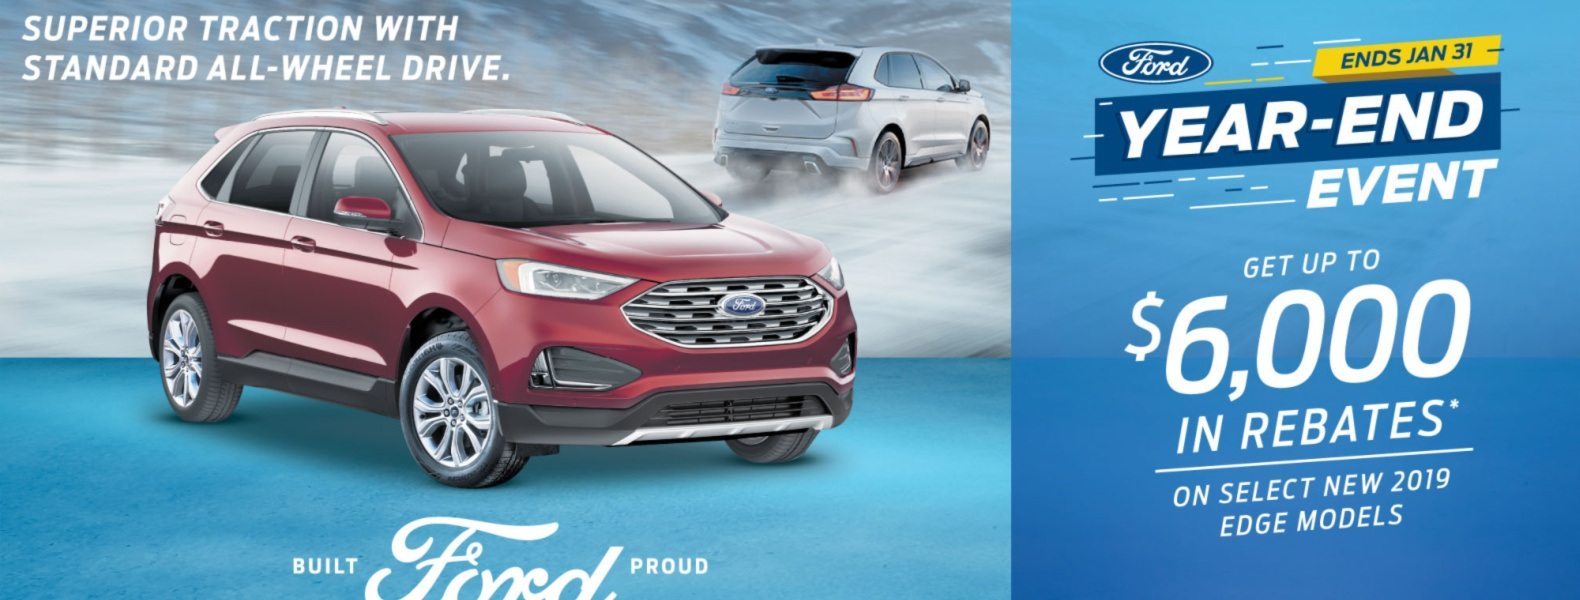 ford edge 2019 rebate